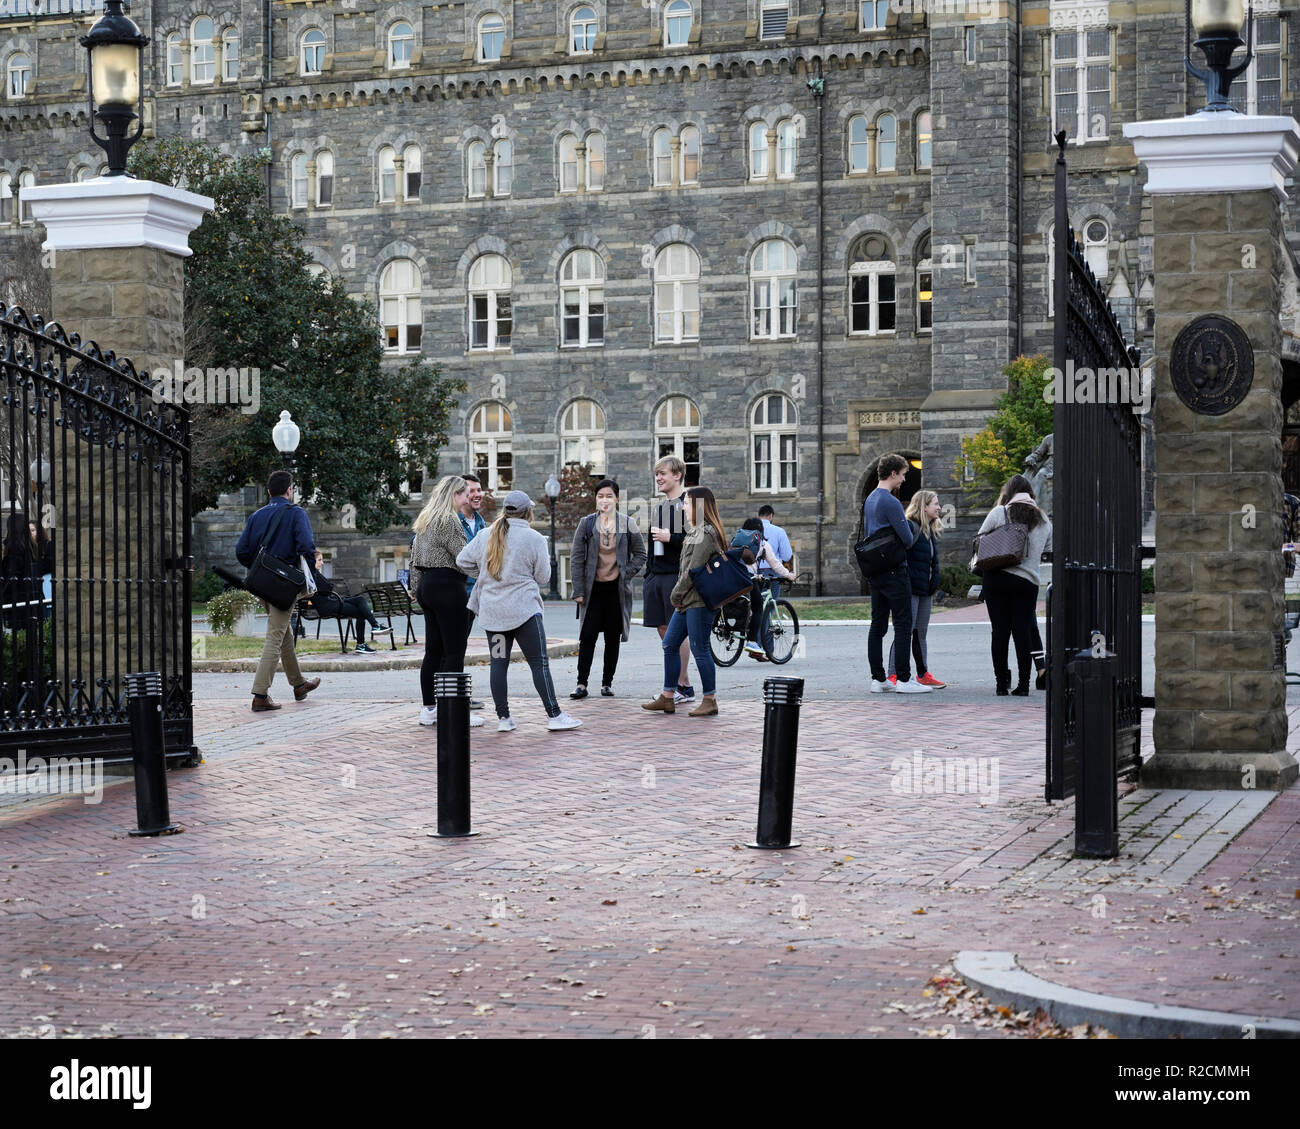 Georgetown University entrance gate with college students talking laughing - Stock Image